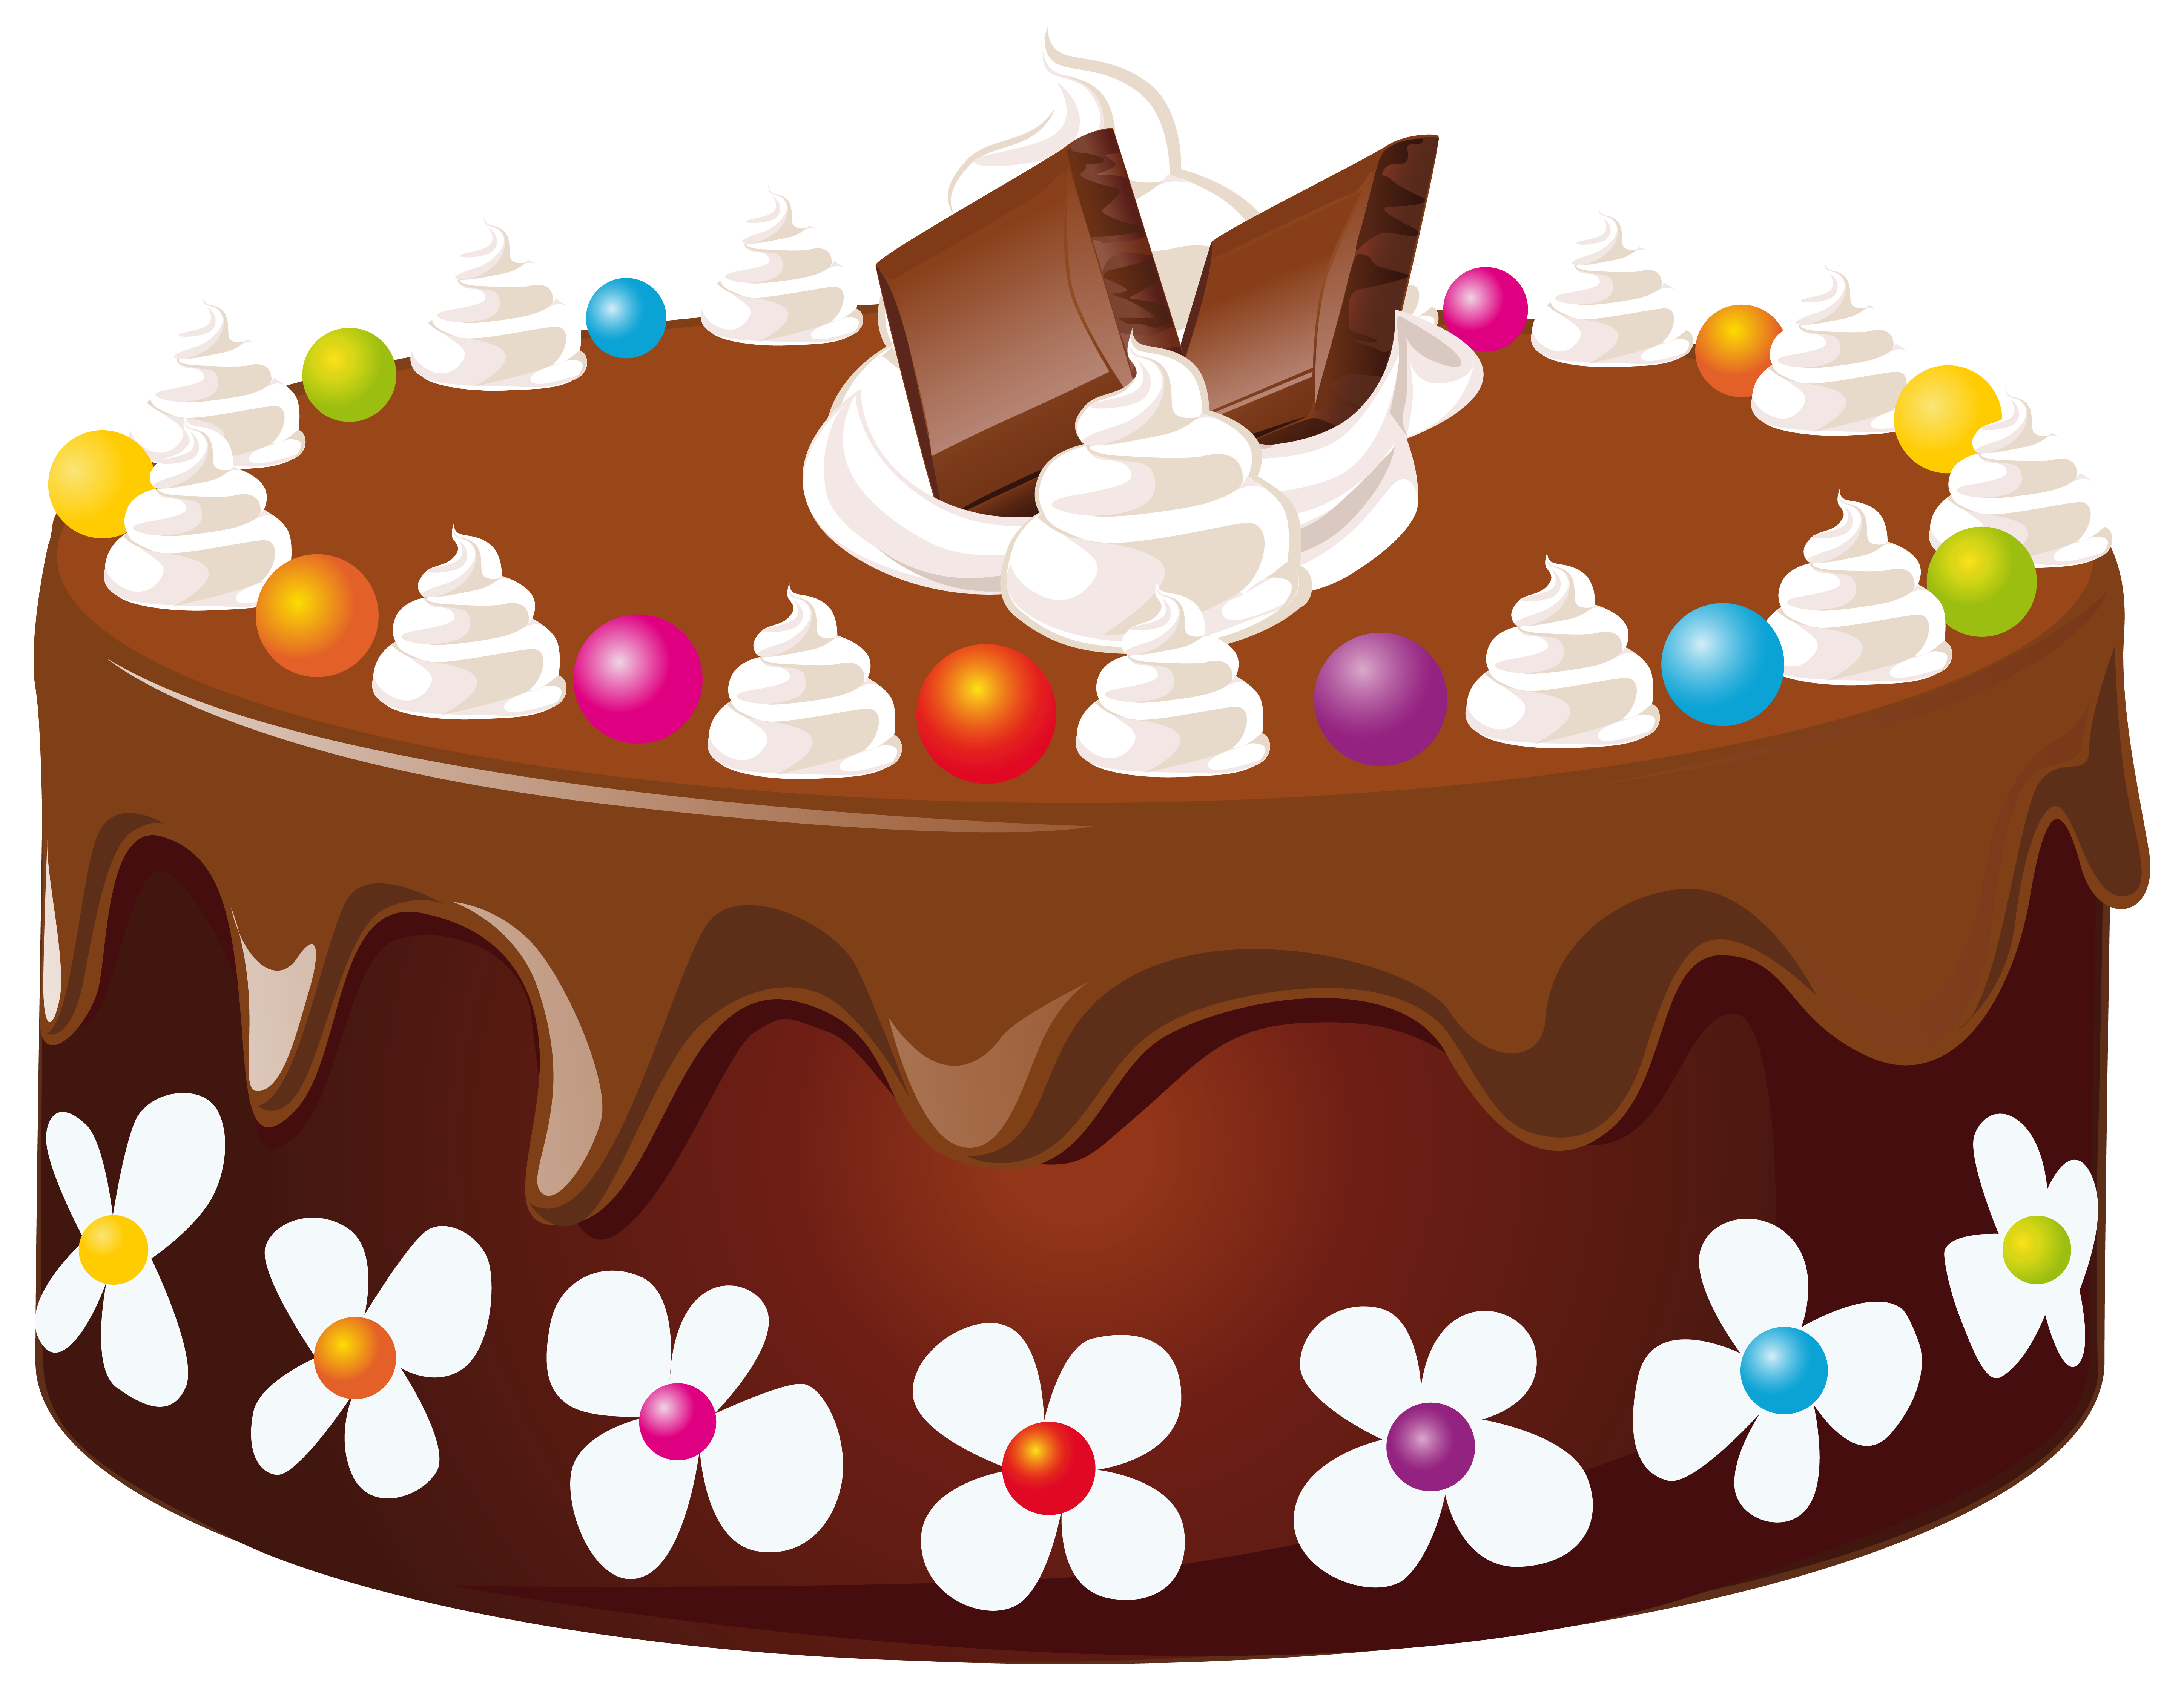 Chocolate png image gallery. Cake clipart cake design